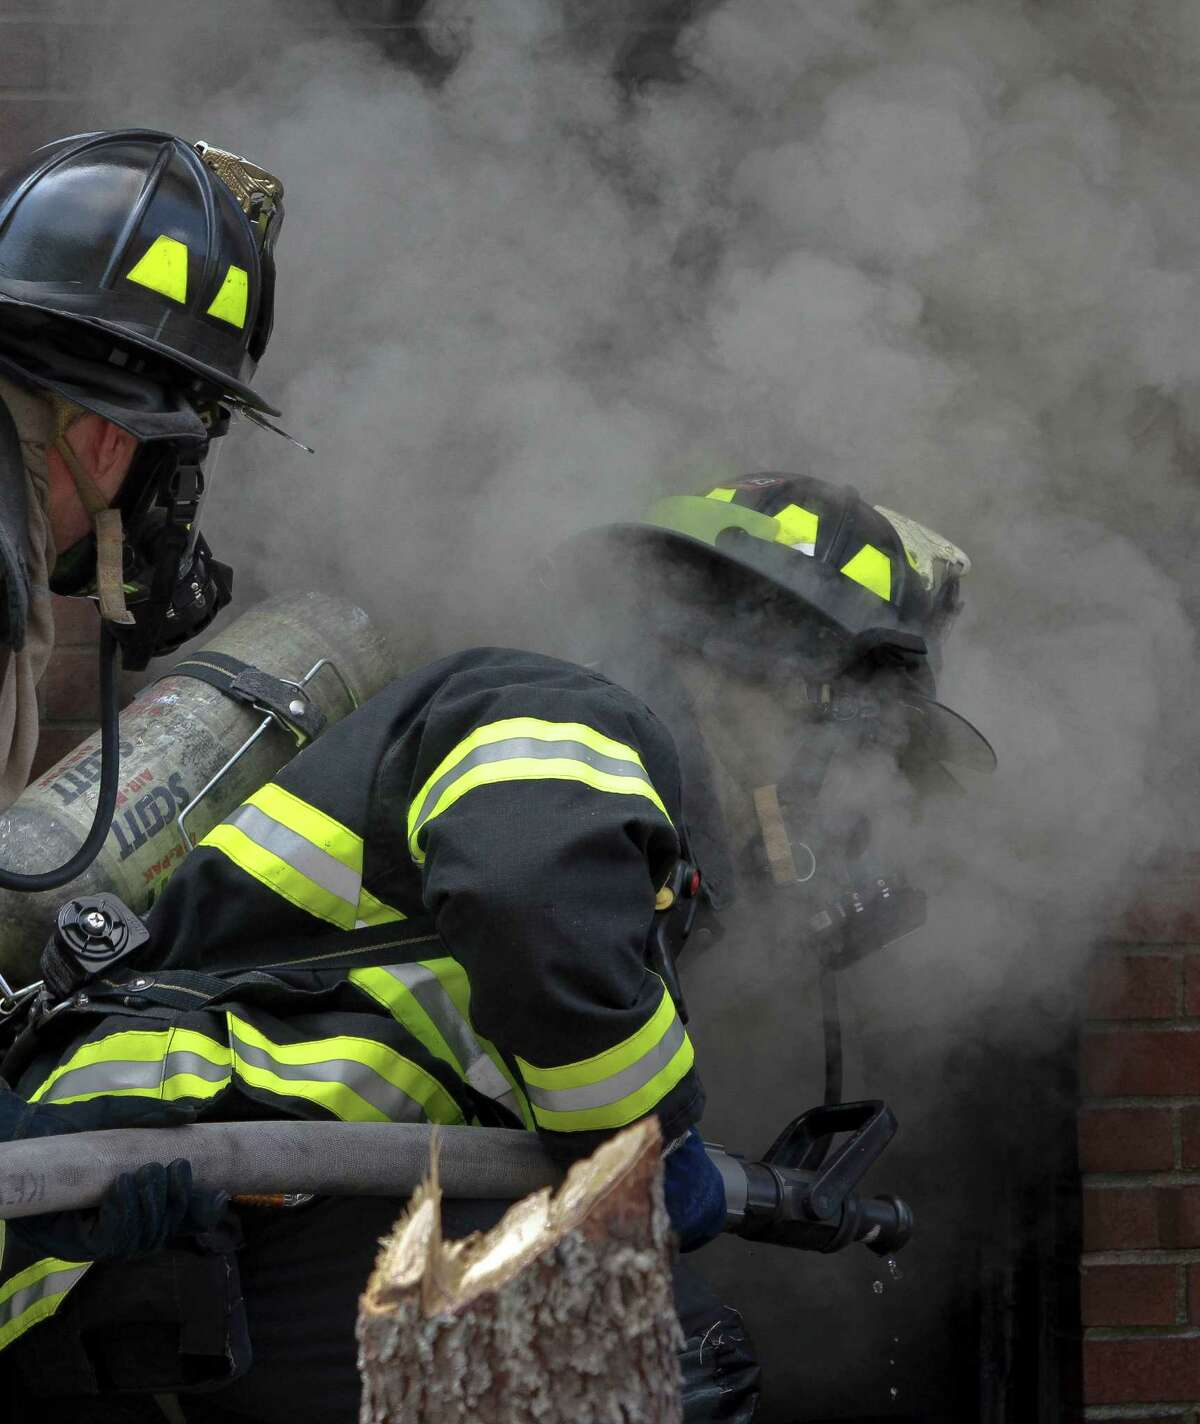 Firefighters face a smoky cellar while fighting a controlled blaze, set in a vacant building on Governors Island as part of research aimed at obtaining important data on fire behavior on Tuesday, July 3, 2012 in New York. An electronic switch ignited a match on a sofa in the decommissioned Coast Guard row house for a